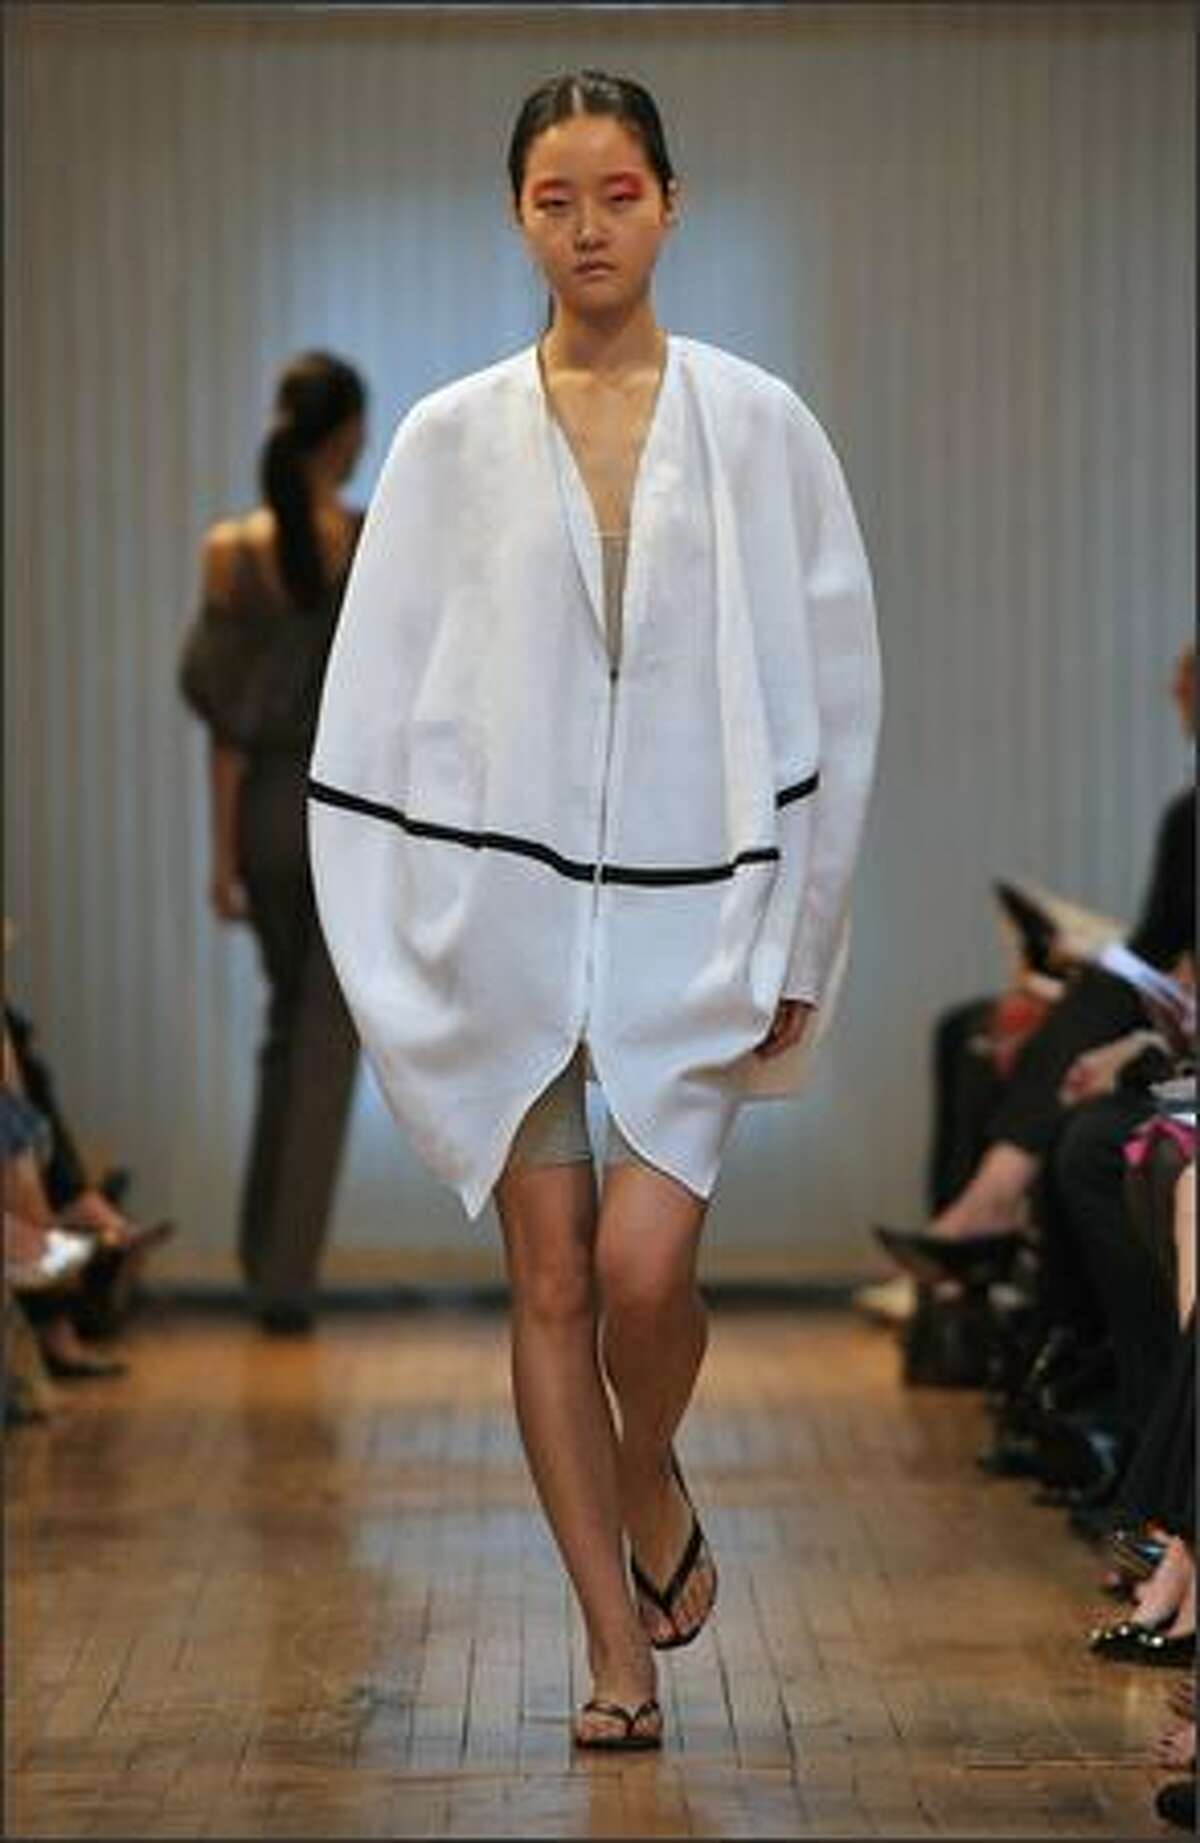 A model walks the runway at the Yeohlee Spring 2009 fashion show during Mercedes-Benz Fashion Week at Van Alen Institute on Monday in New York City.